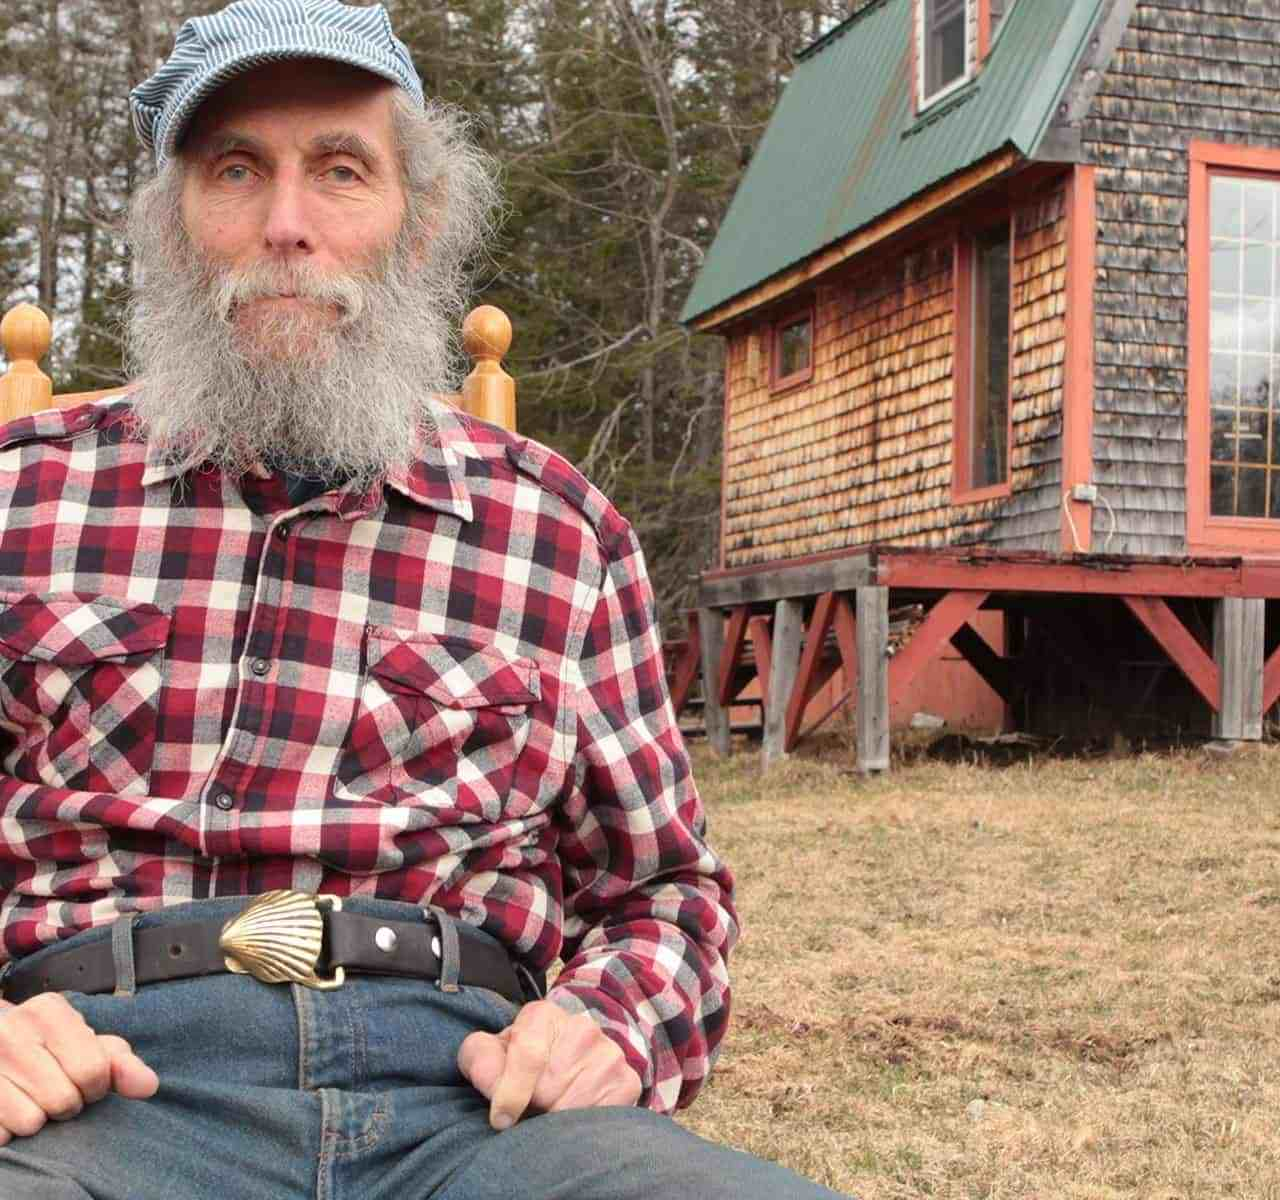 Burt's Bees Wax Founder Lives in a Tiny House, Check it Out